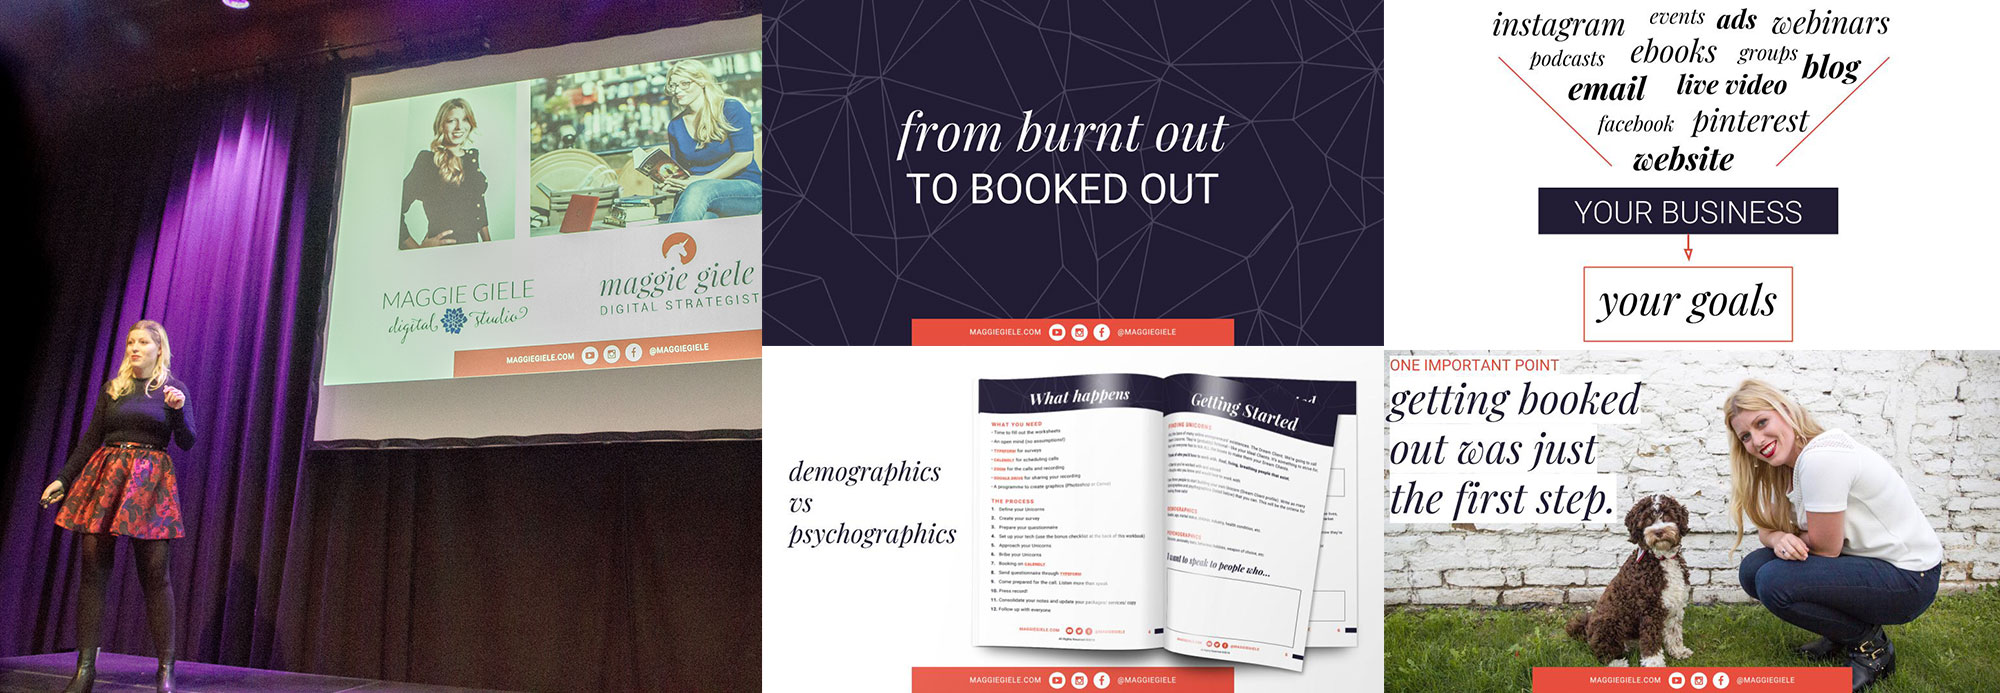 Maggie Giele's presentation: Fom Burnt Out to Booked Out